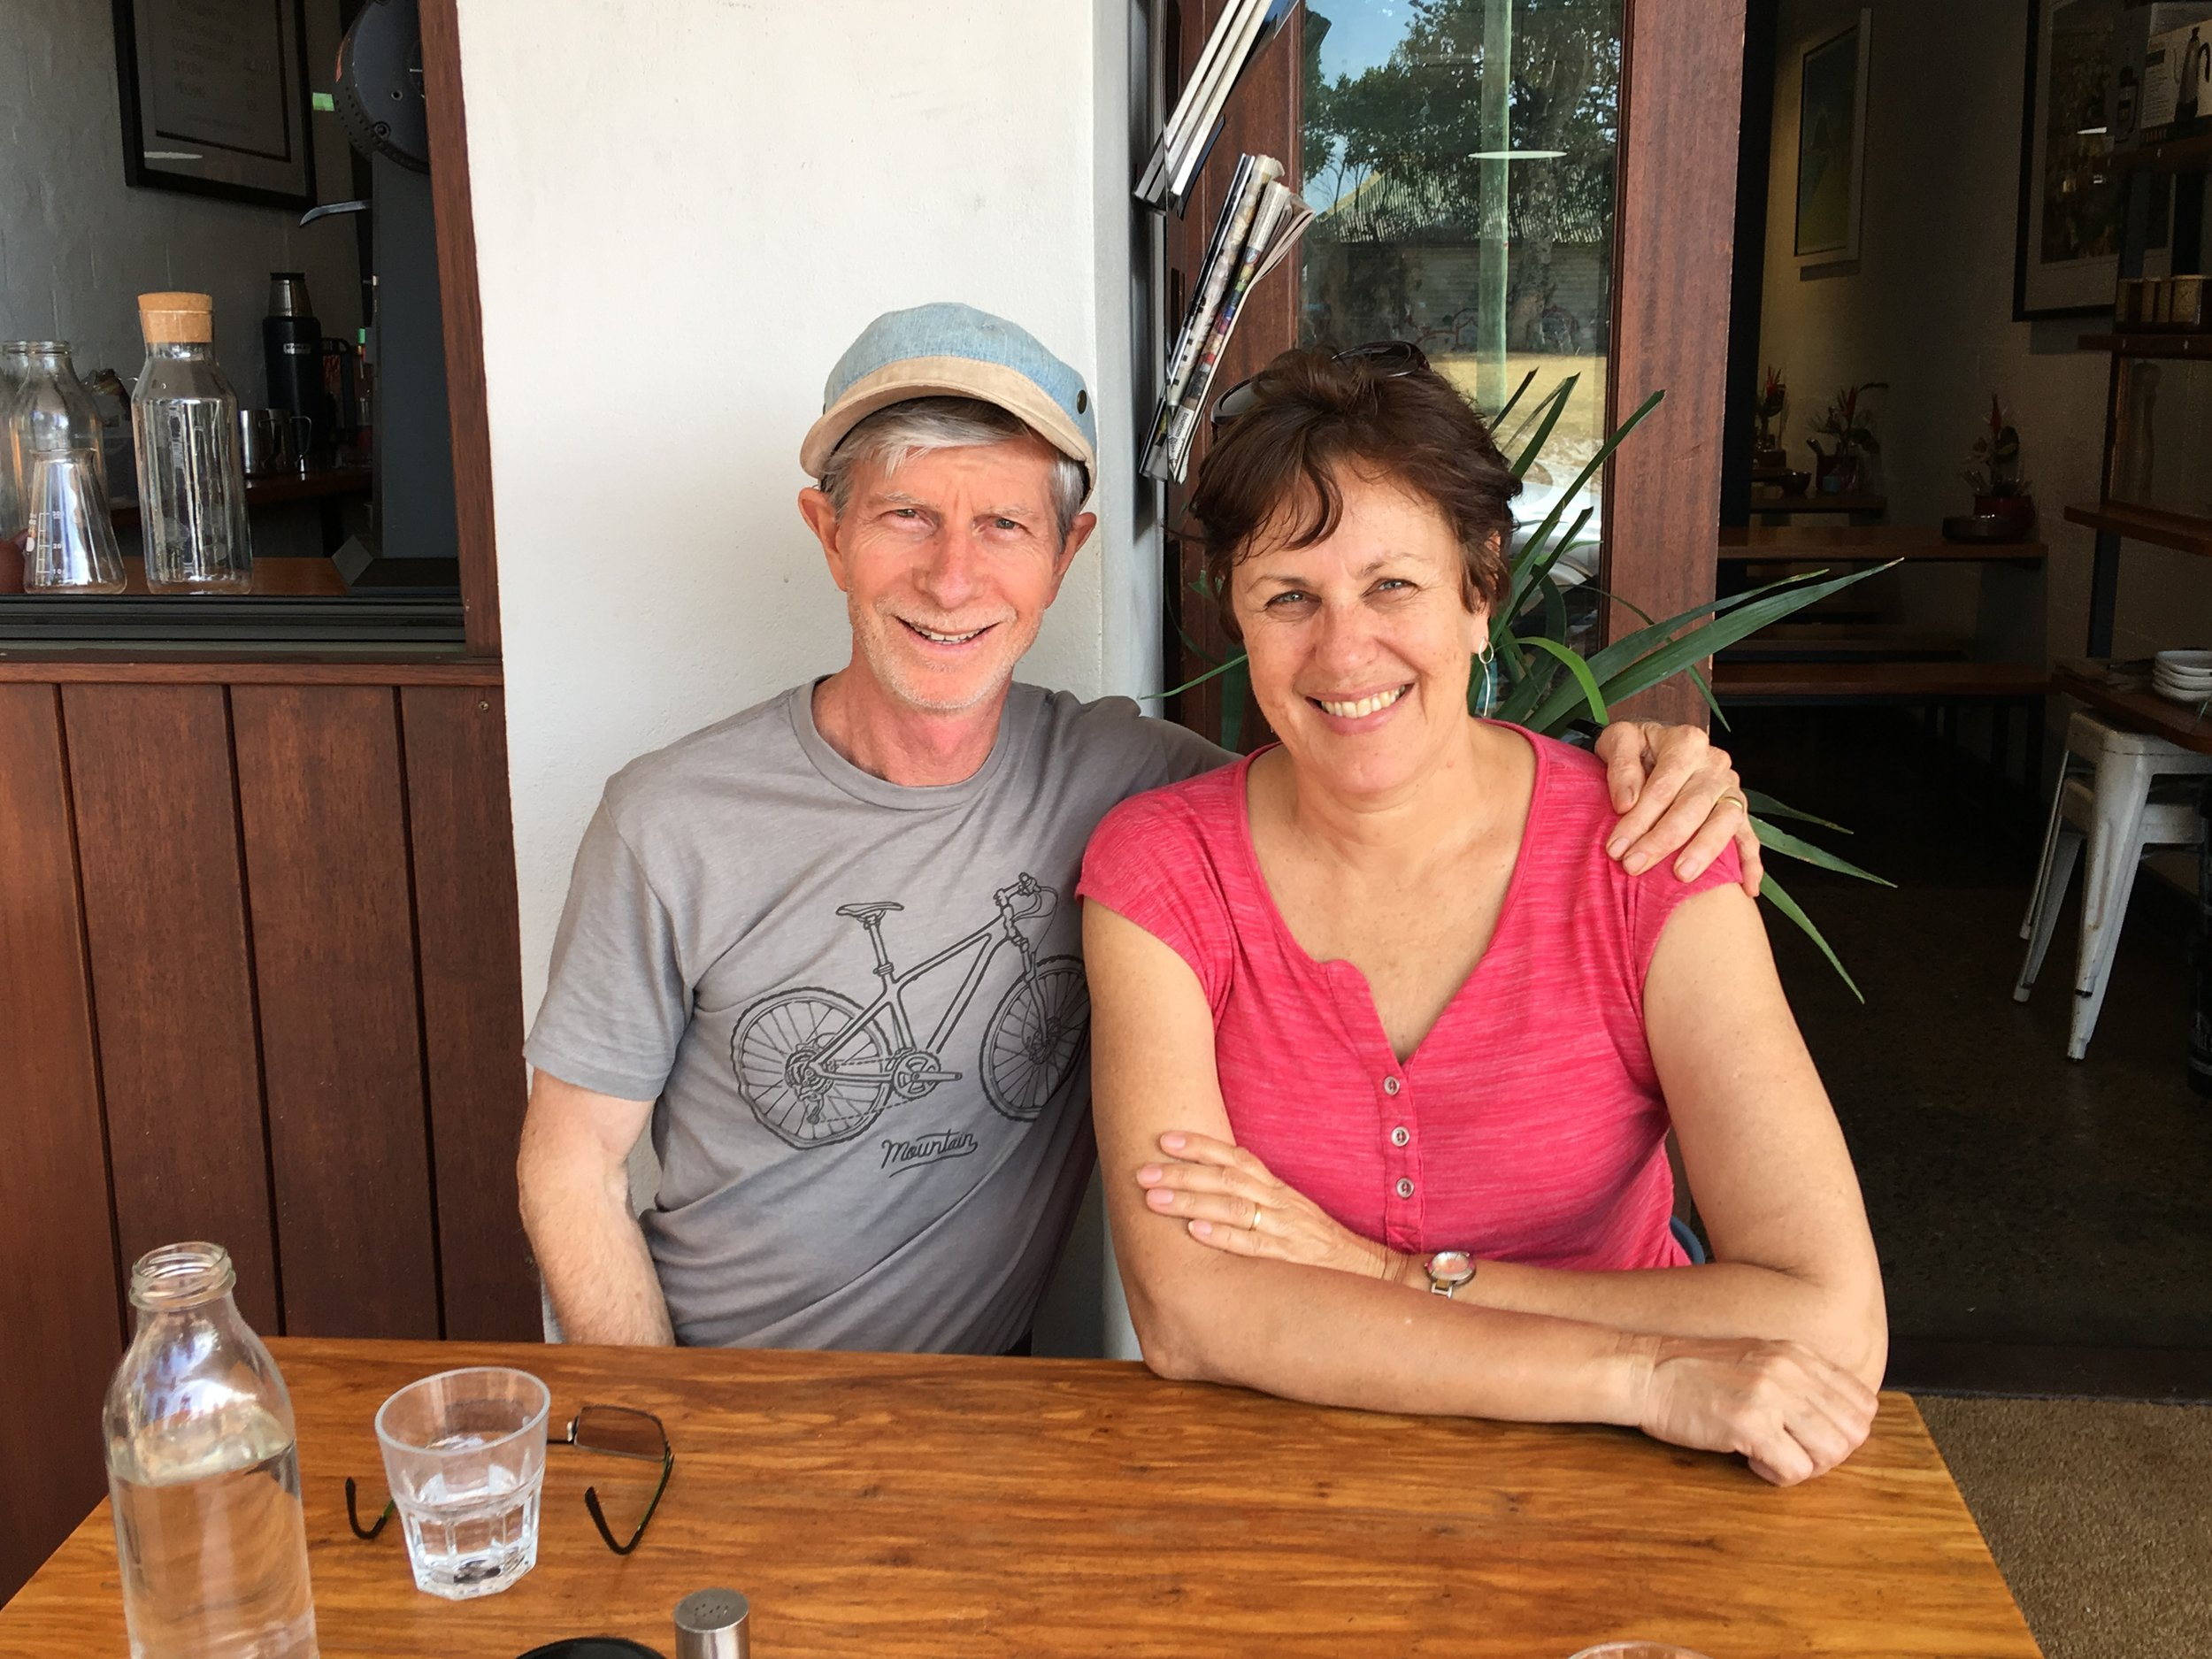 - Our teachers - Our retreat leader, Sonja is a qualified and very experienced Physiotherapist, Yoga therapist and Yoga teacher. Sonja is especially interested in making yoga work for all different bodies and also for developing people's awareness of themselves and links between mind and body. She will be assisted by her husband, Peter who is also a qualified yoga teacher.